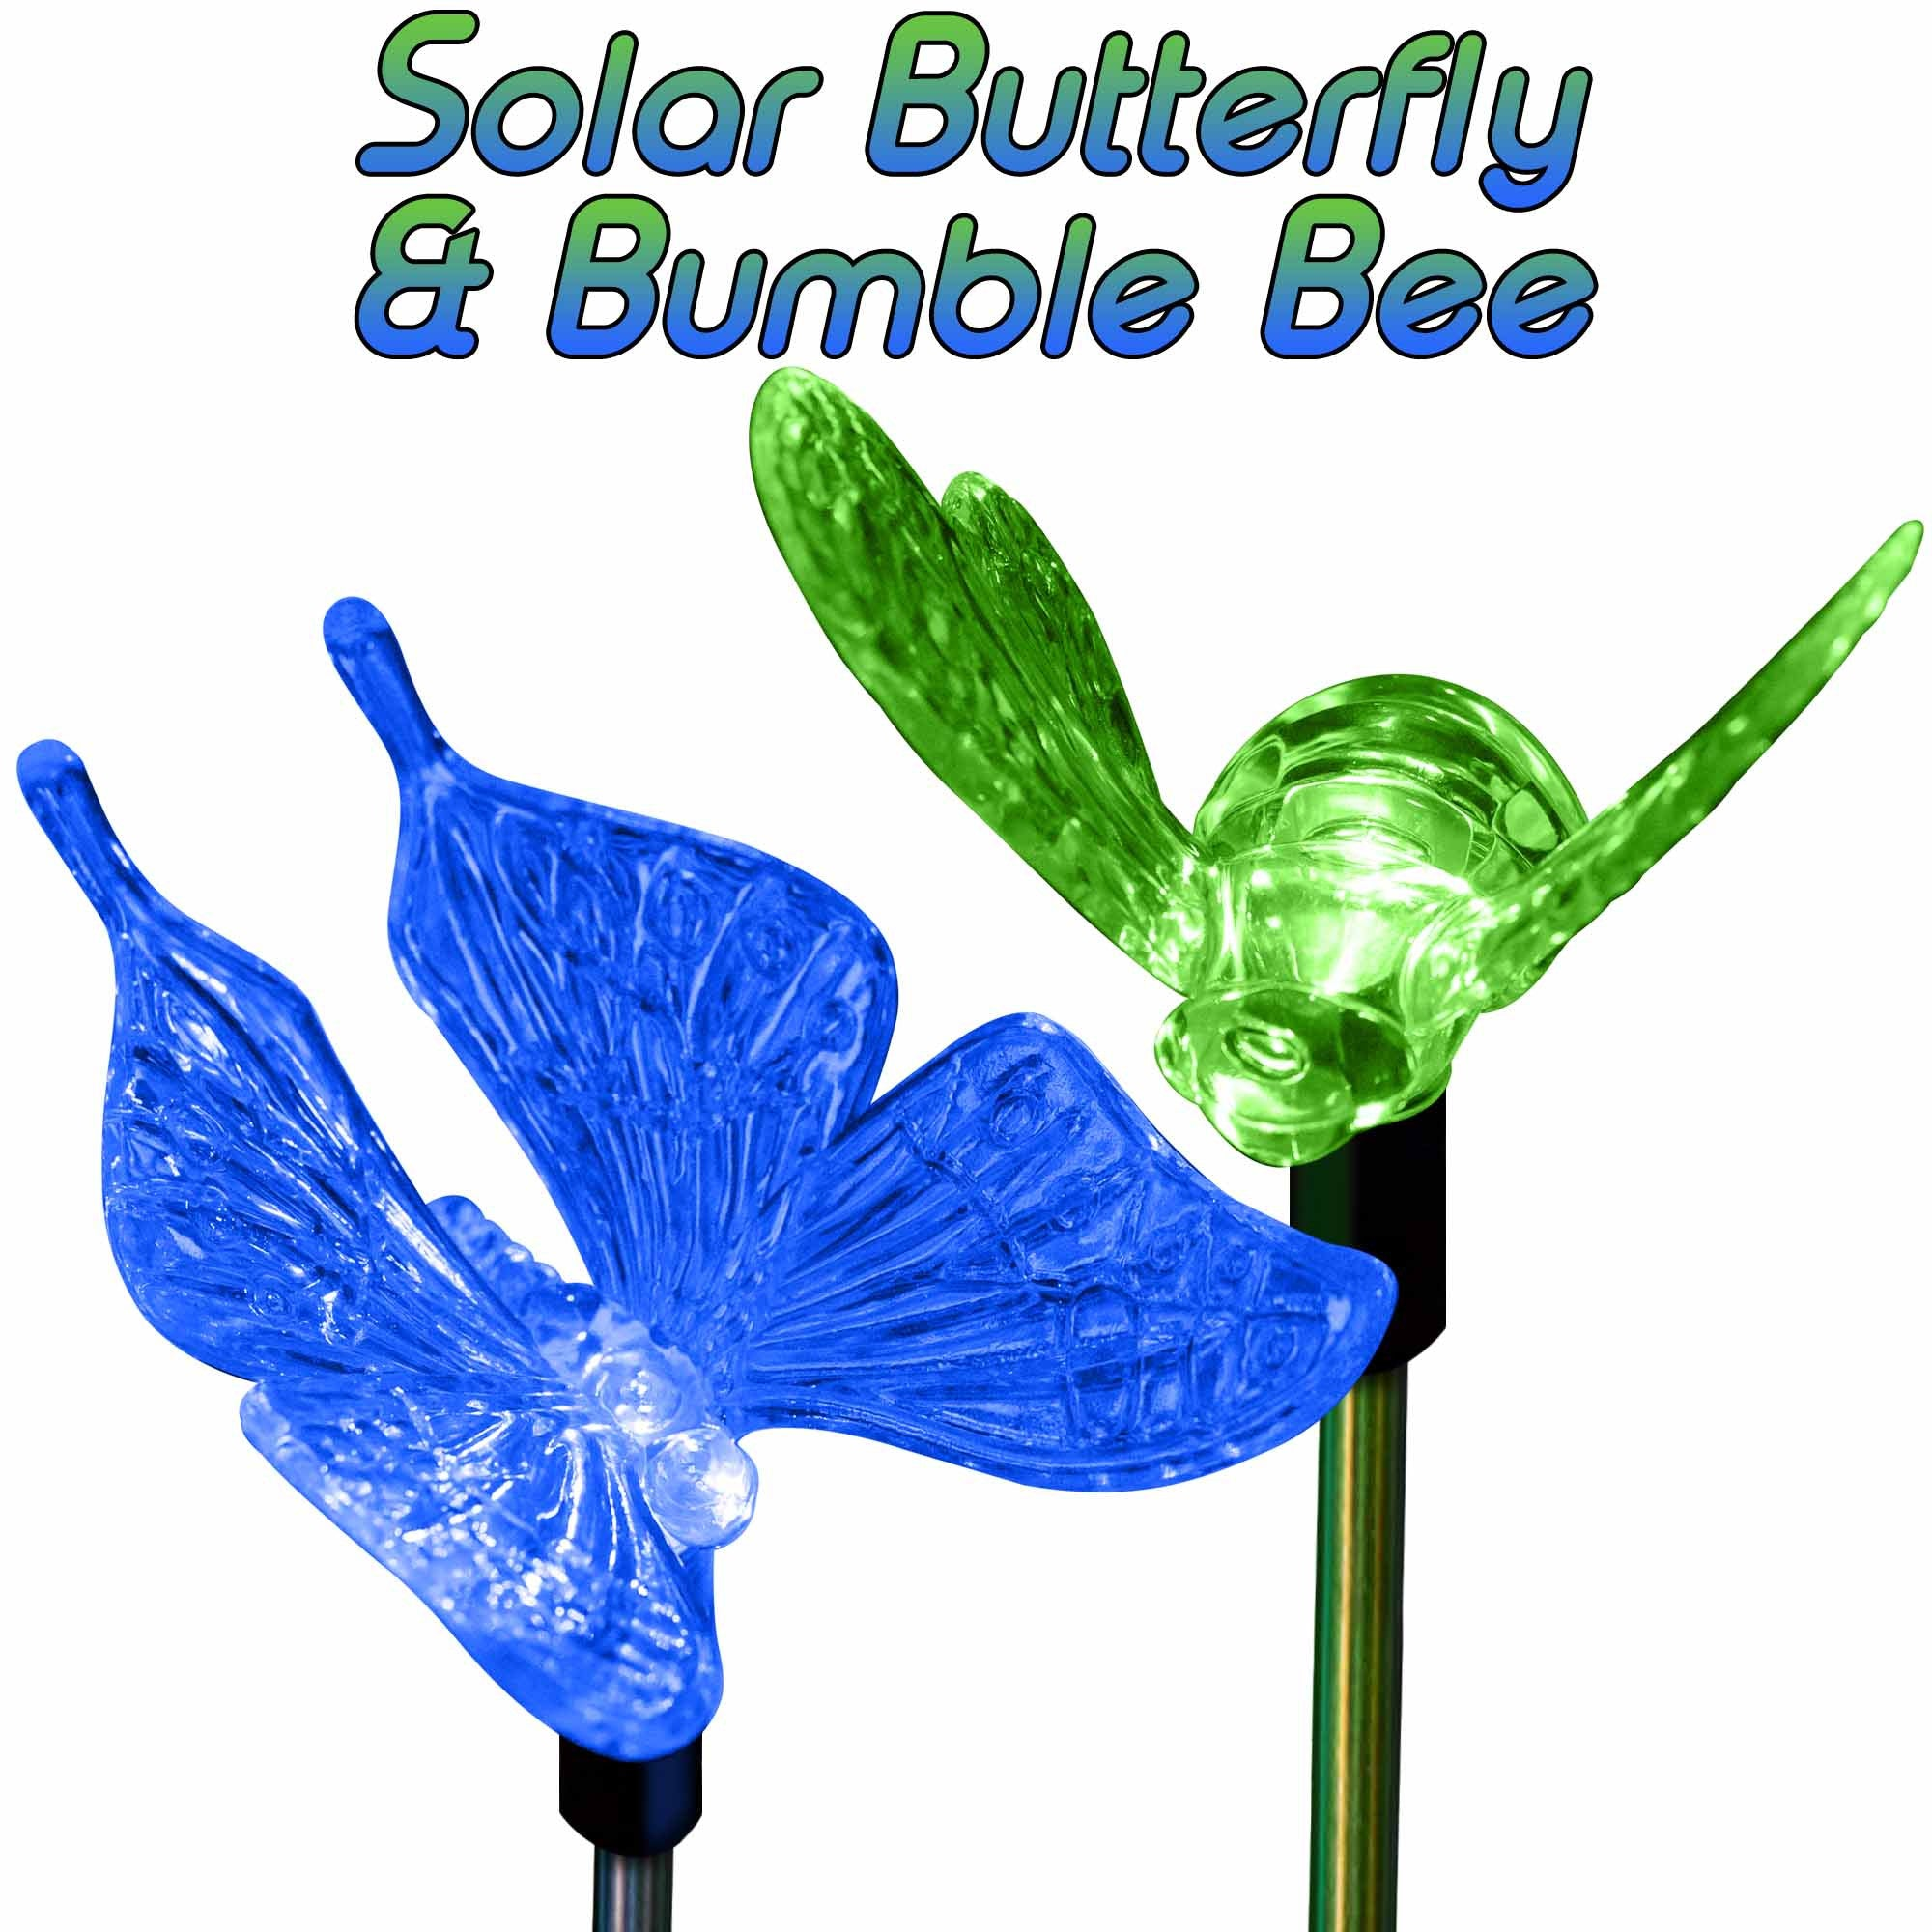 Butterfly & Bumble Bee Solar Garden Decoration Lights - My Dream Palace